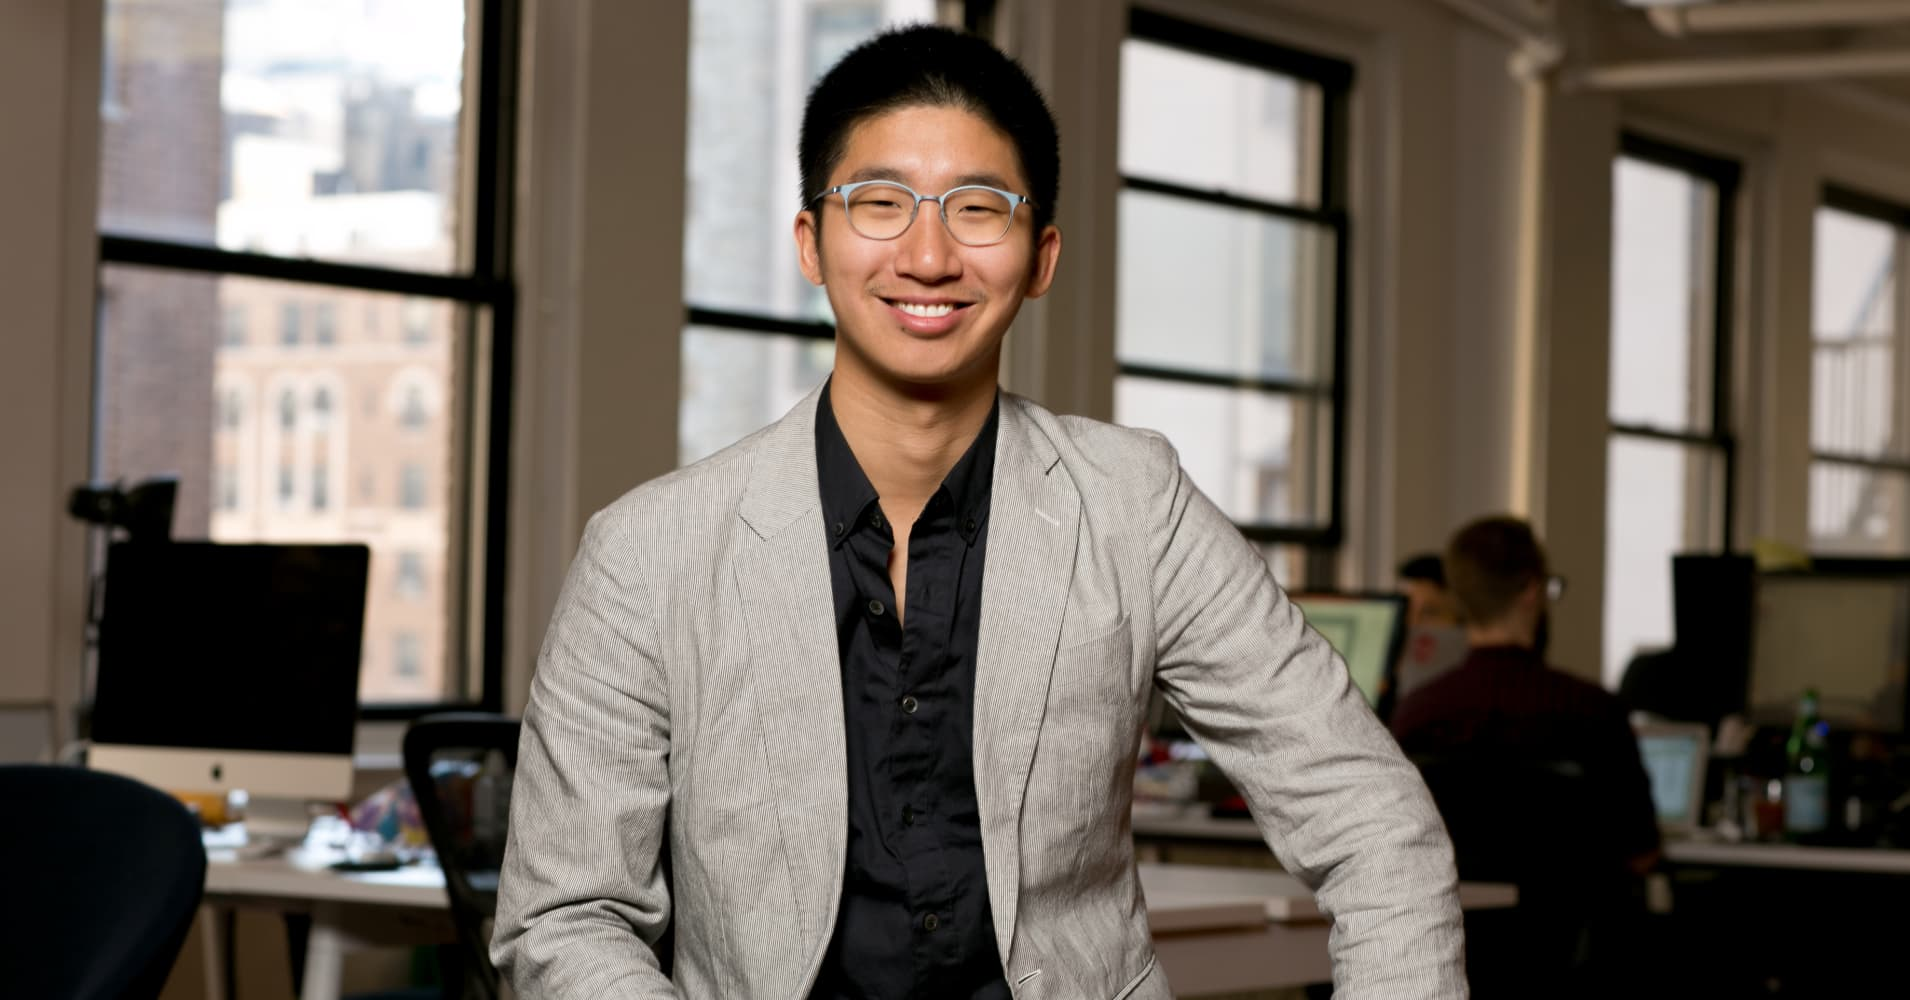 Brian Wong, founder and CEO of Kiip